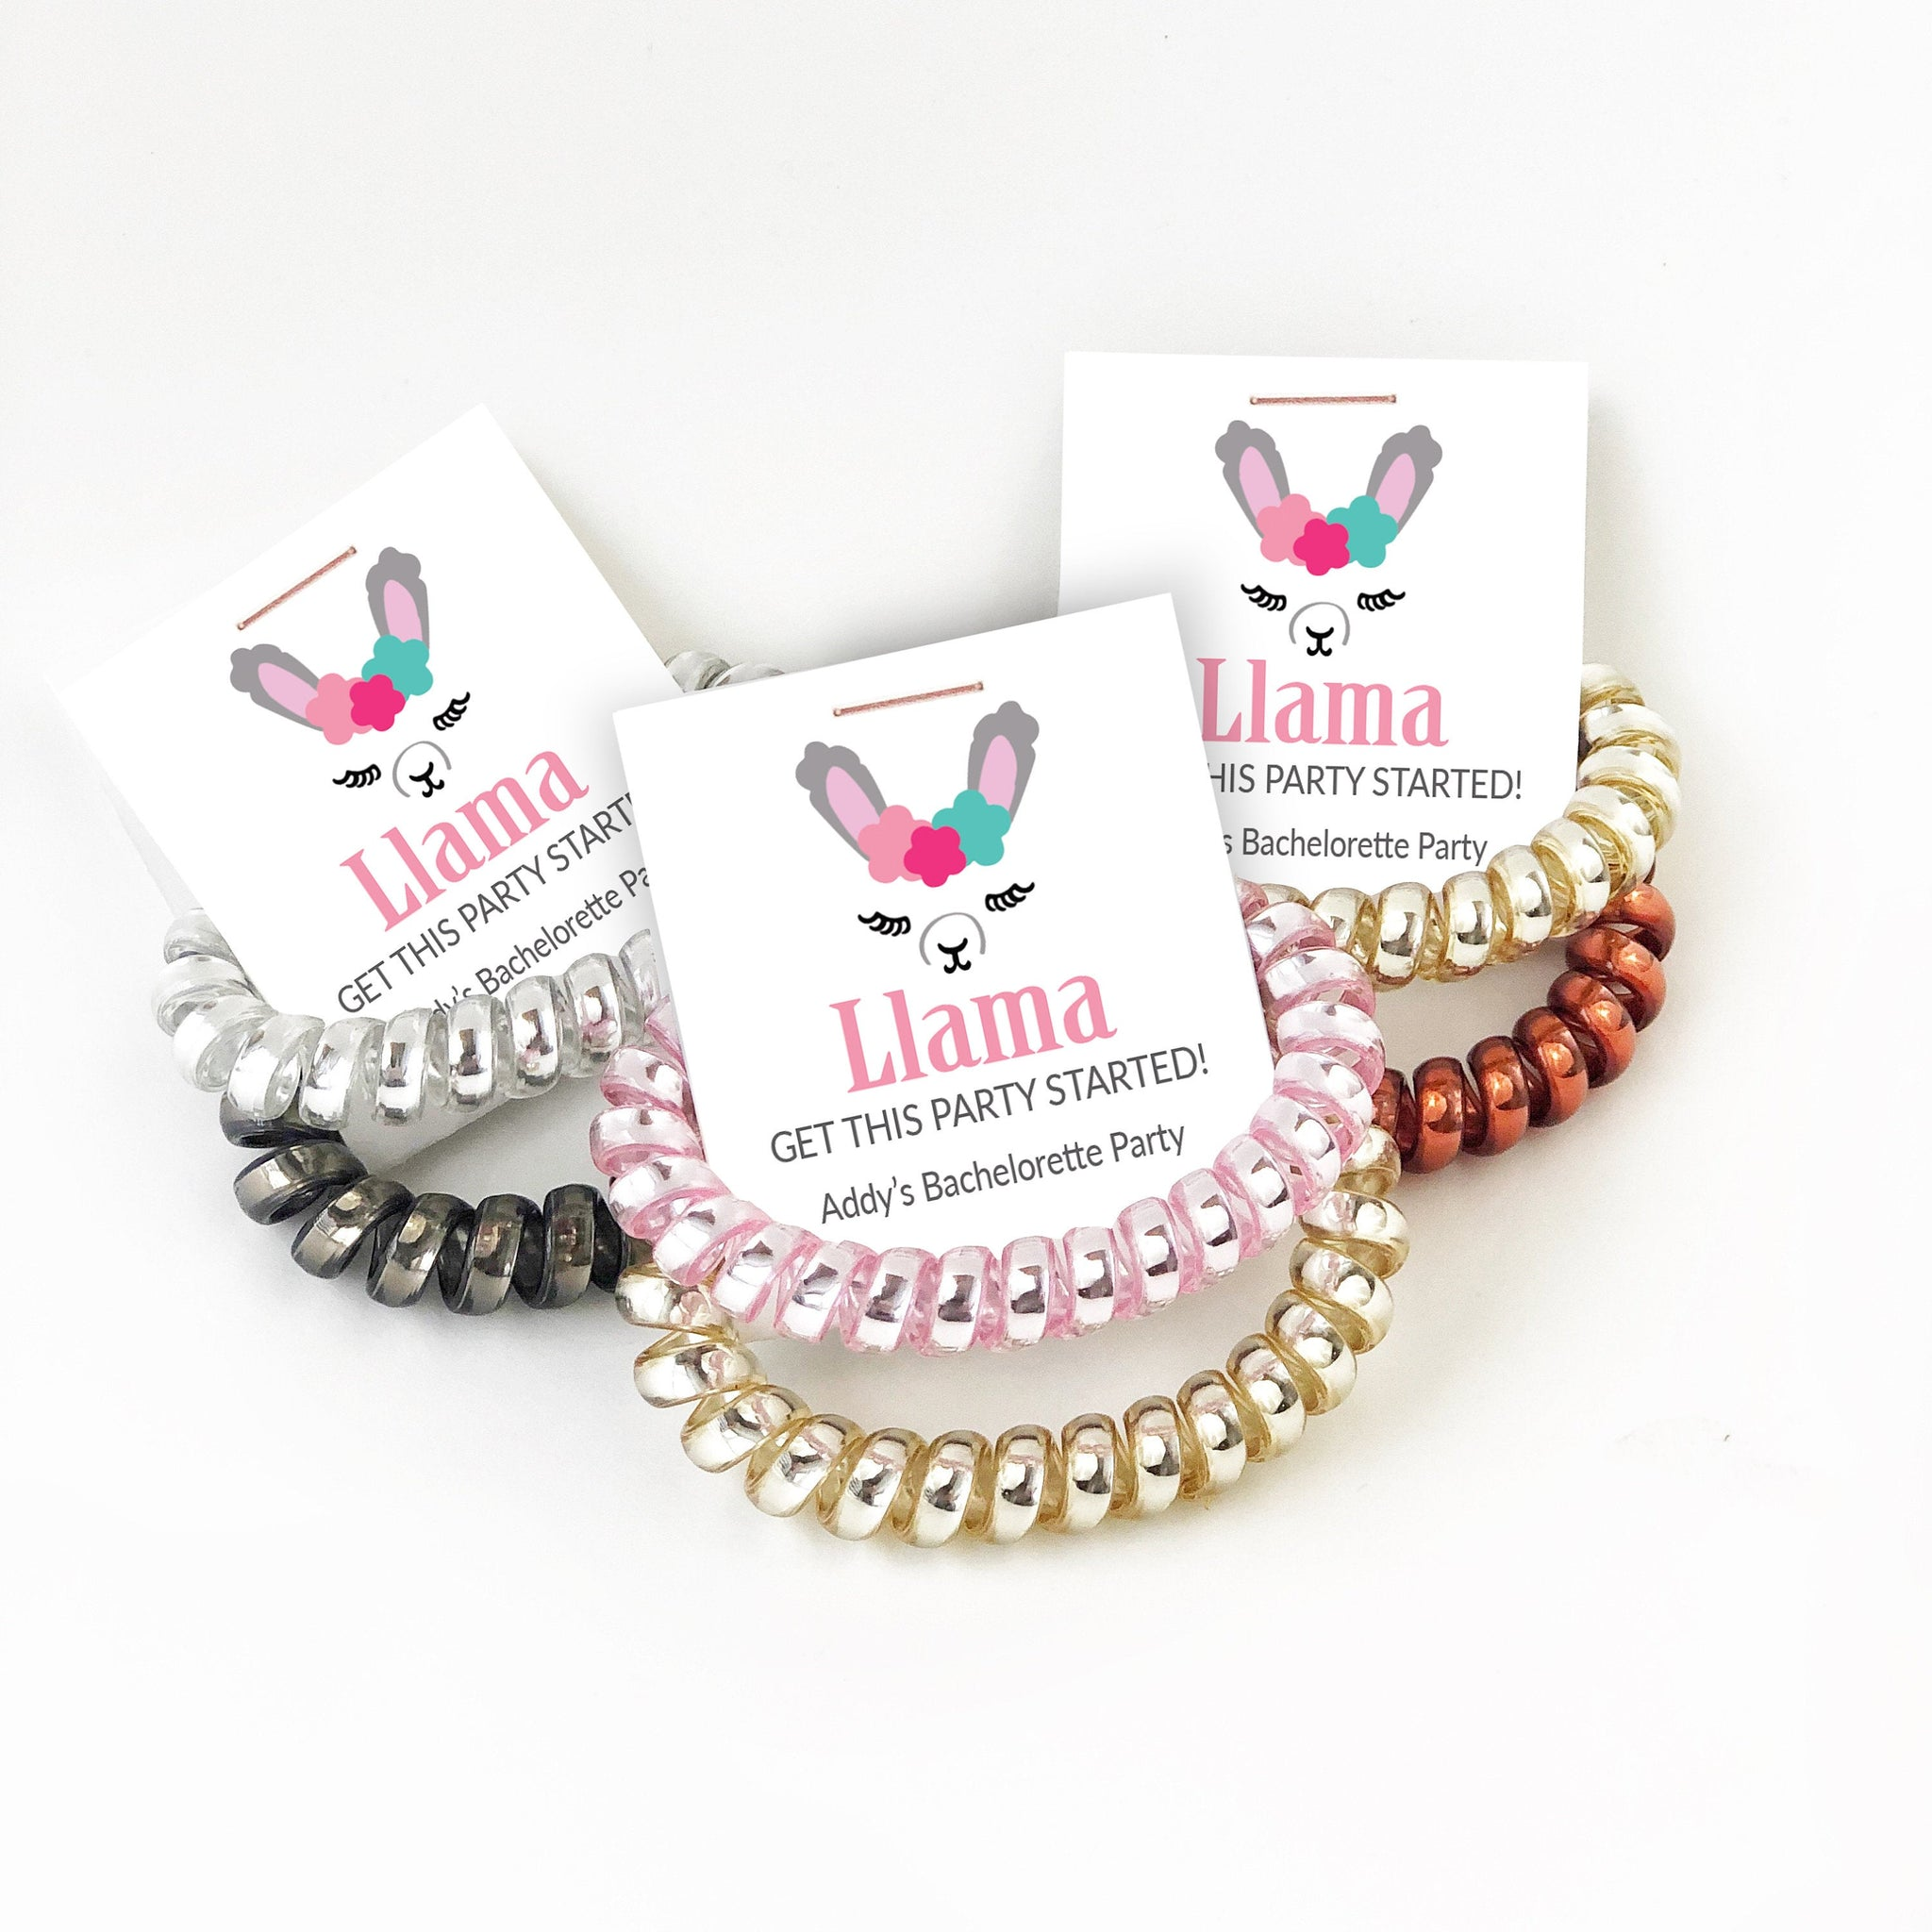 Llama Bachelorette Party Favors, Spiral Hair Ties - @PlumPolkaDot